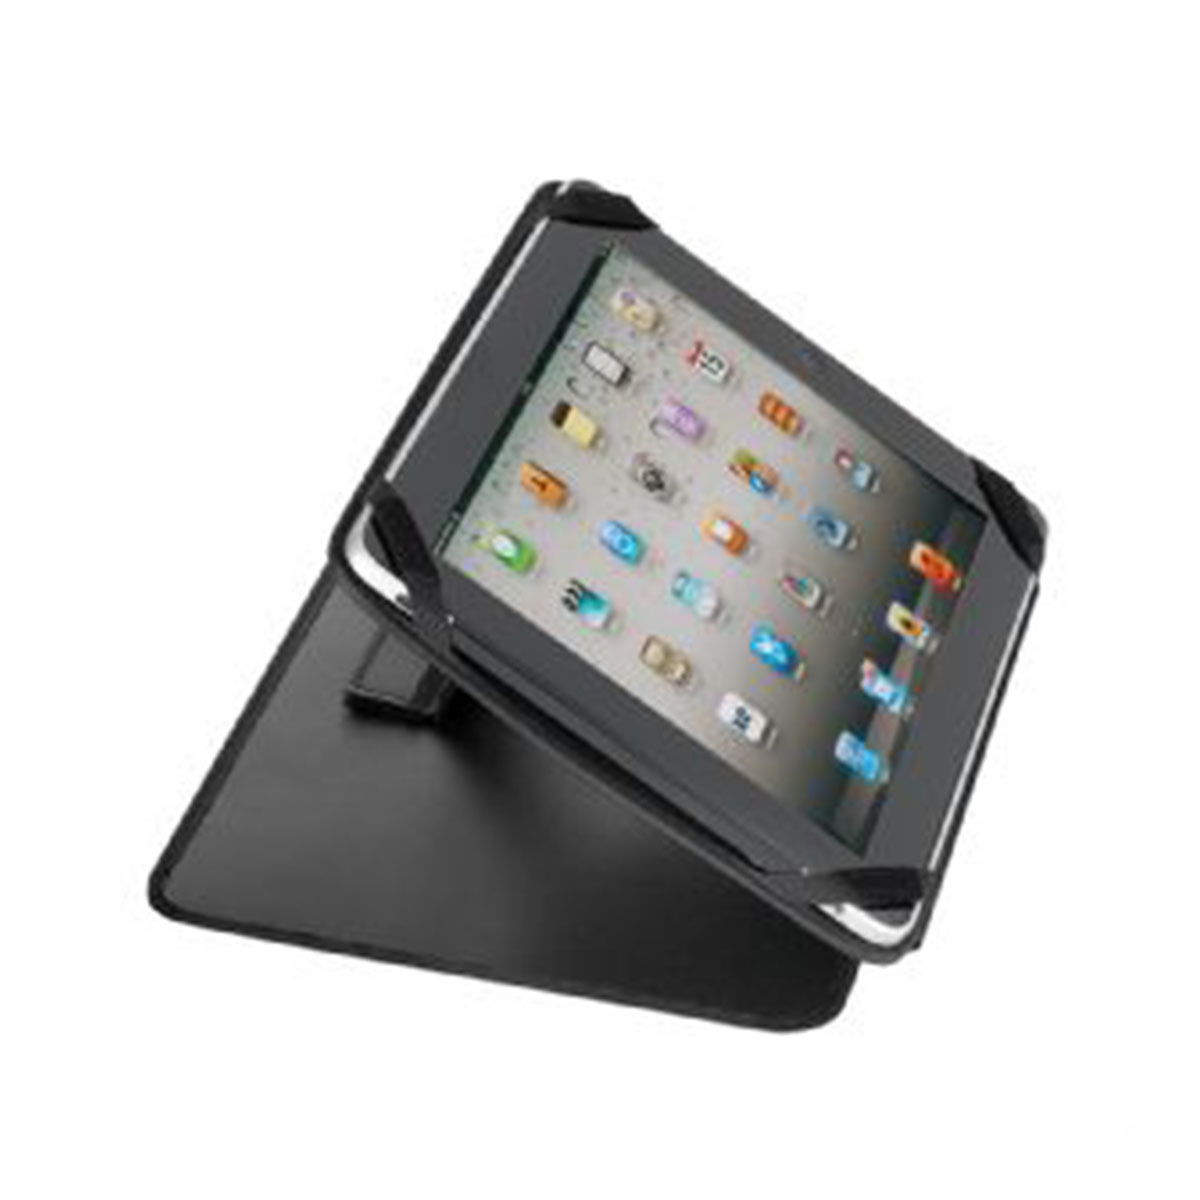 iPad Holder for Compendium-Black